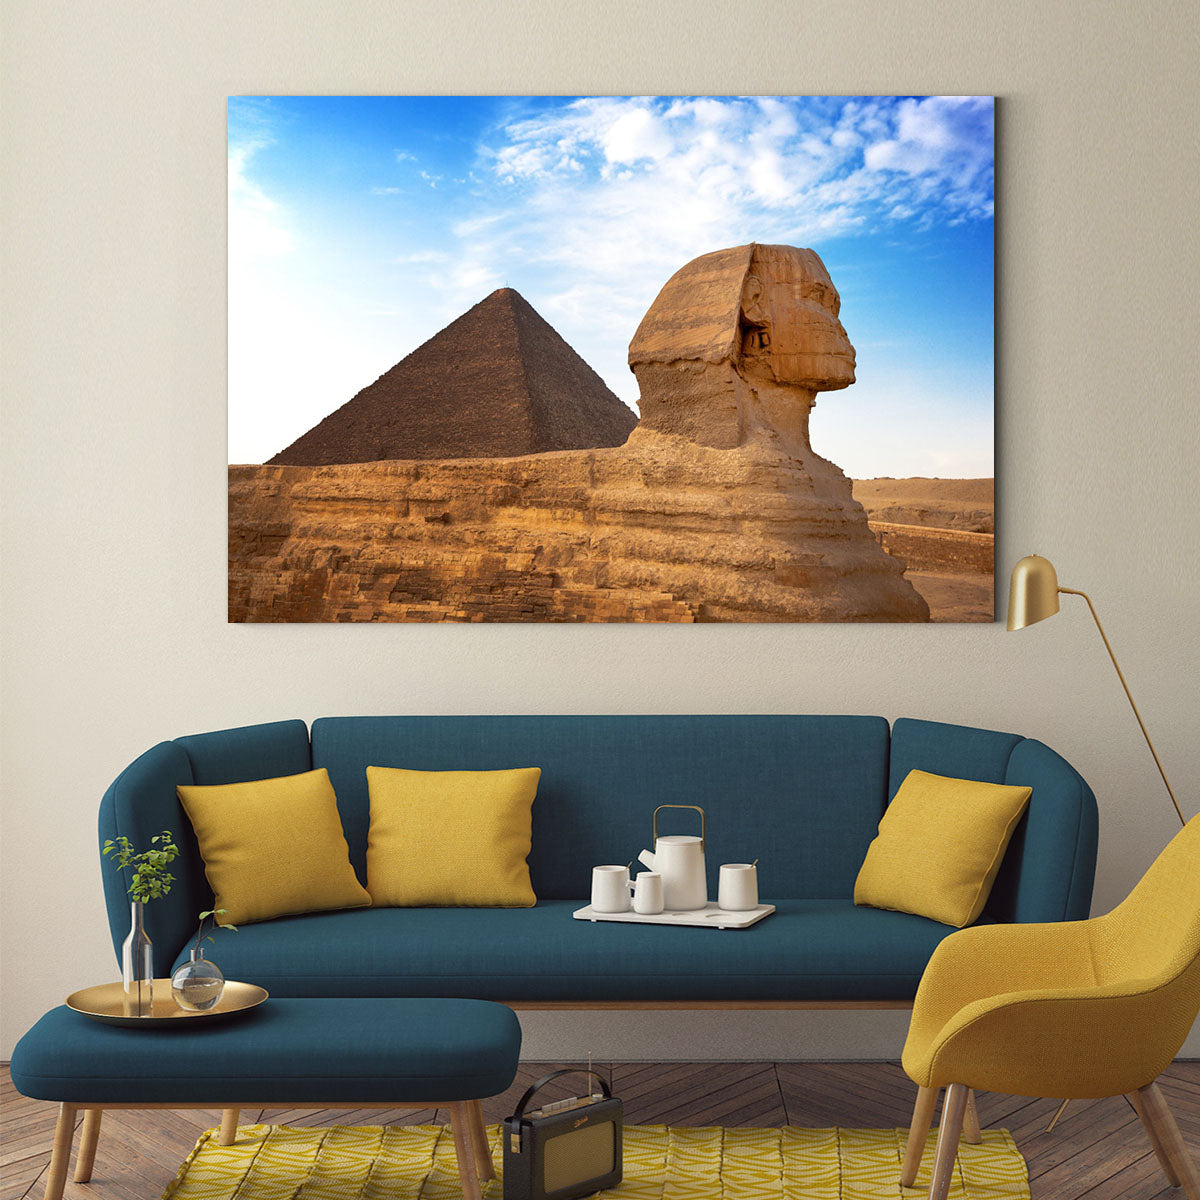 Strange Egyptian Pyramids Sphinx View 39 Andrewgaddart Wooden Chair Designs For Living Room Andrewgaddartcom